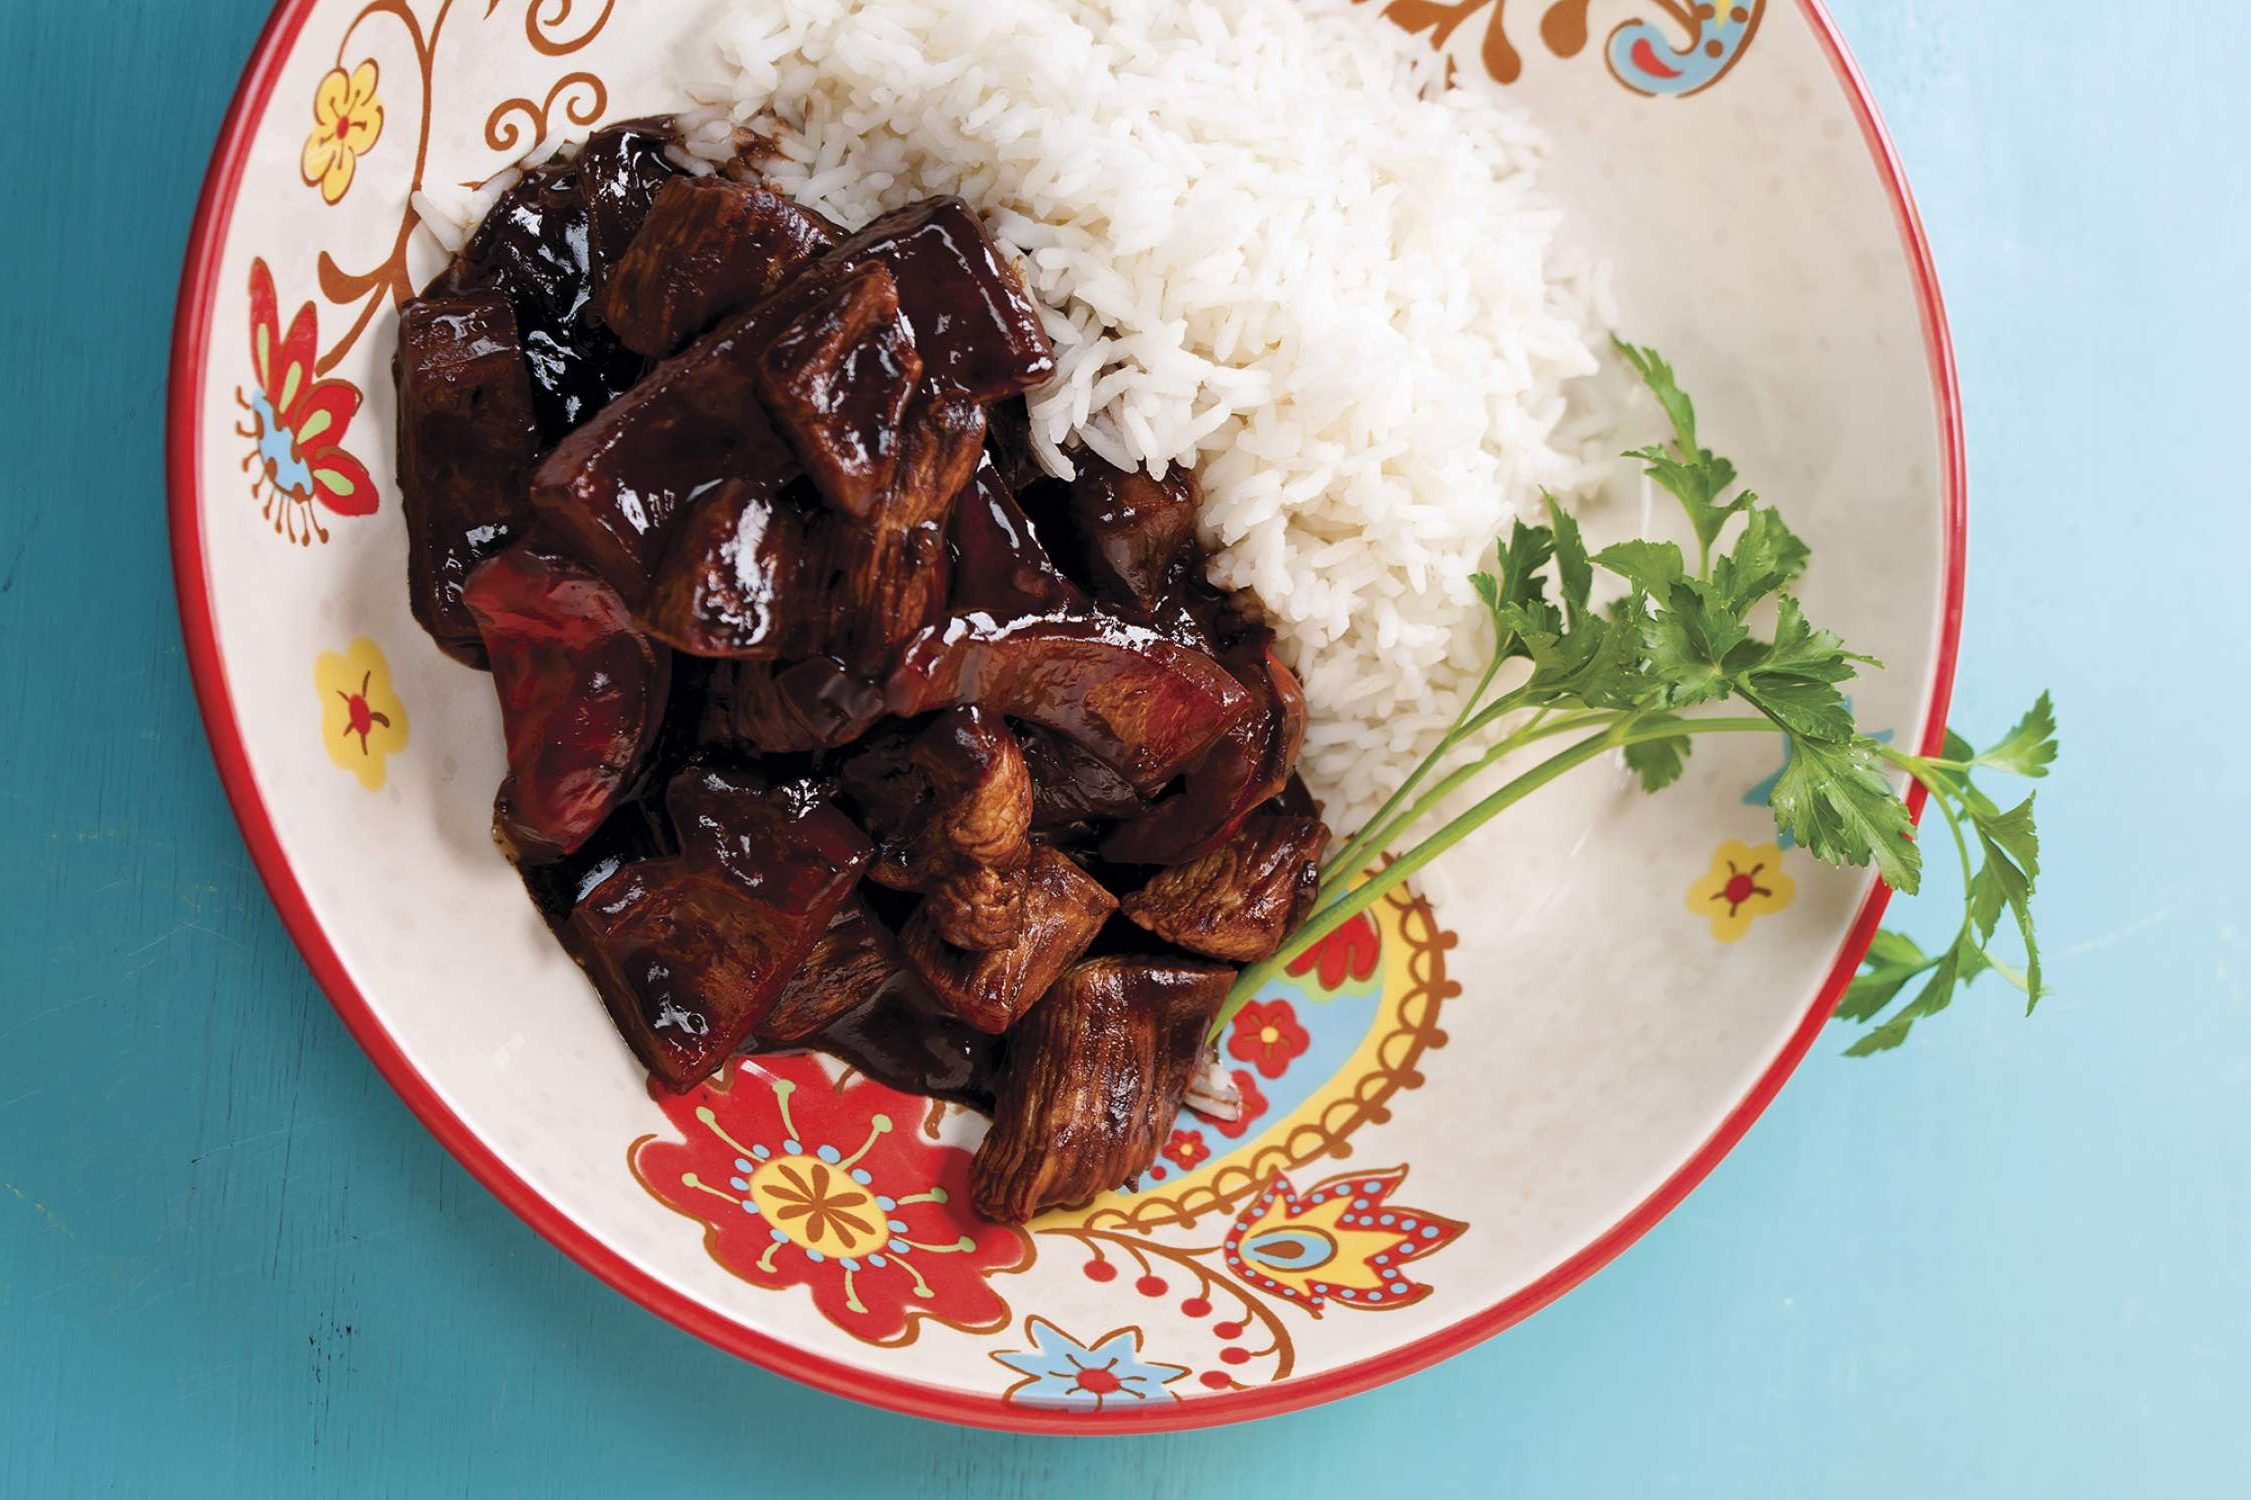 Chicken mole with rice